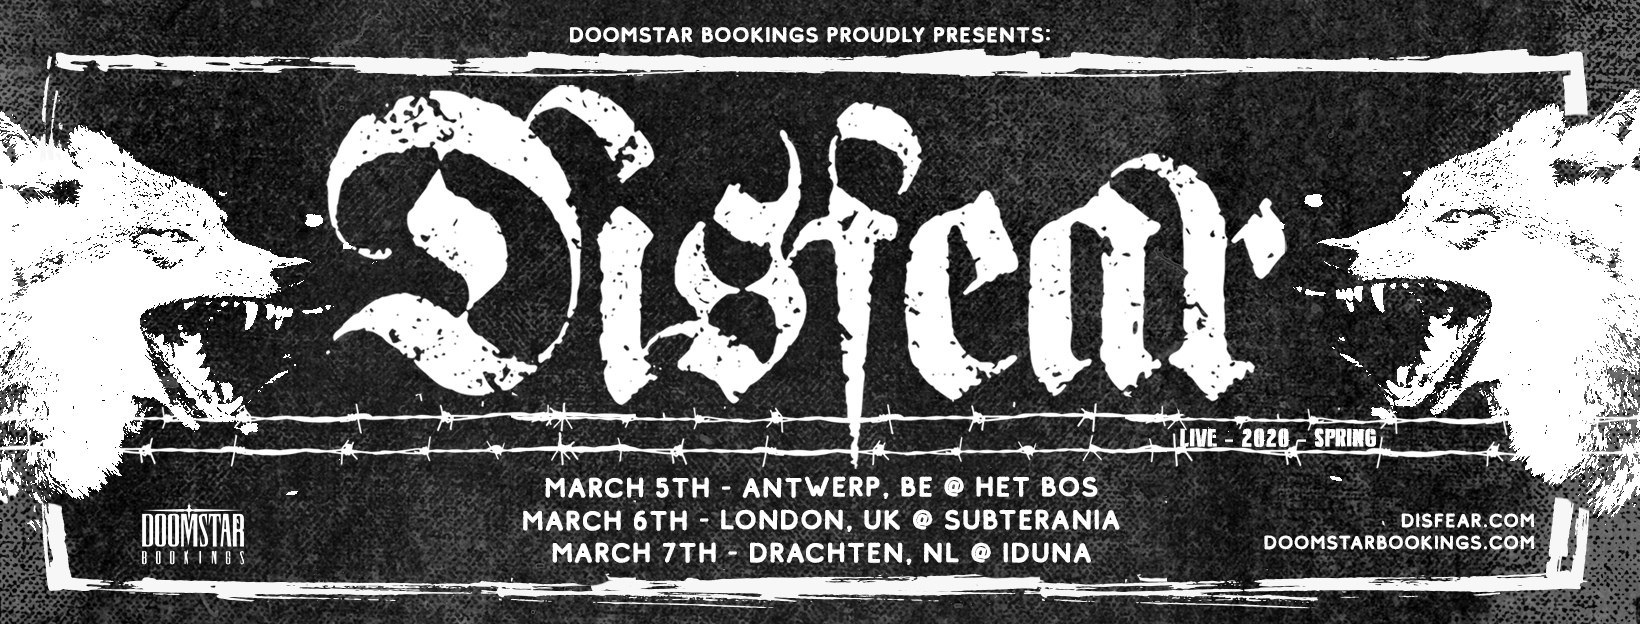 Disfear - 3 European dates 2020 - Doomstar Bookings poster